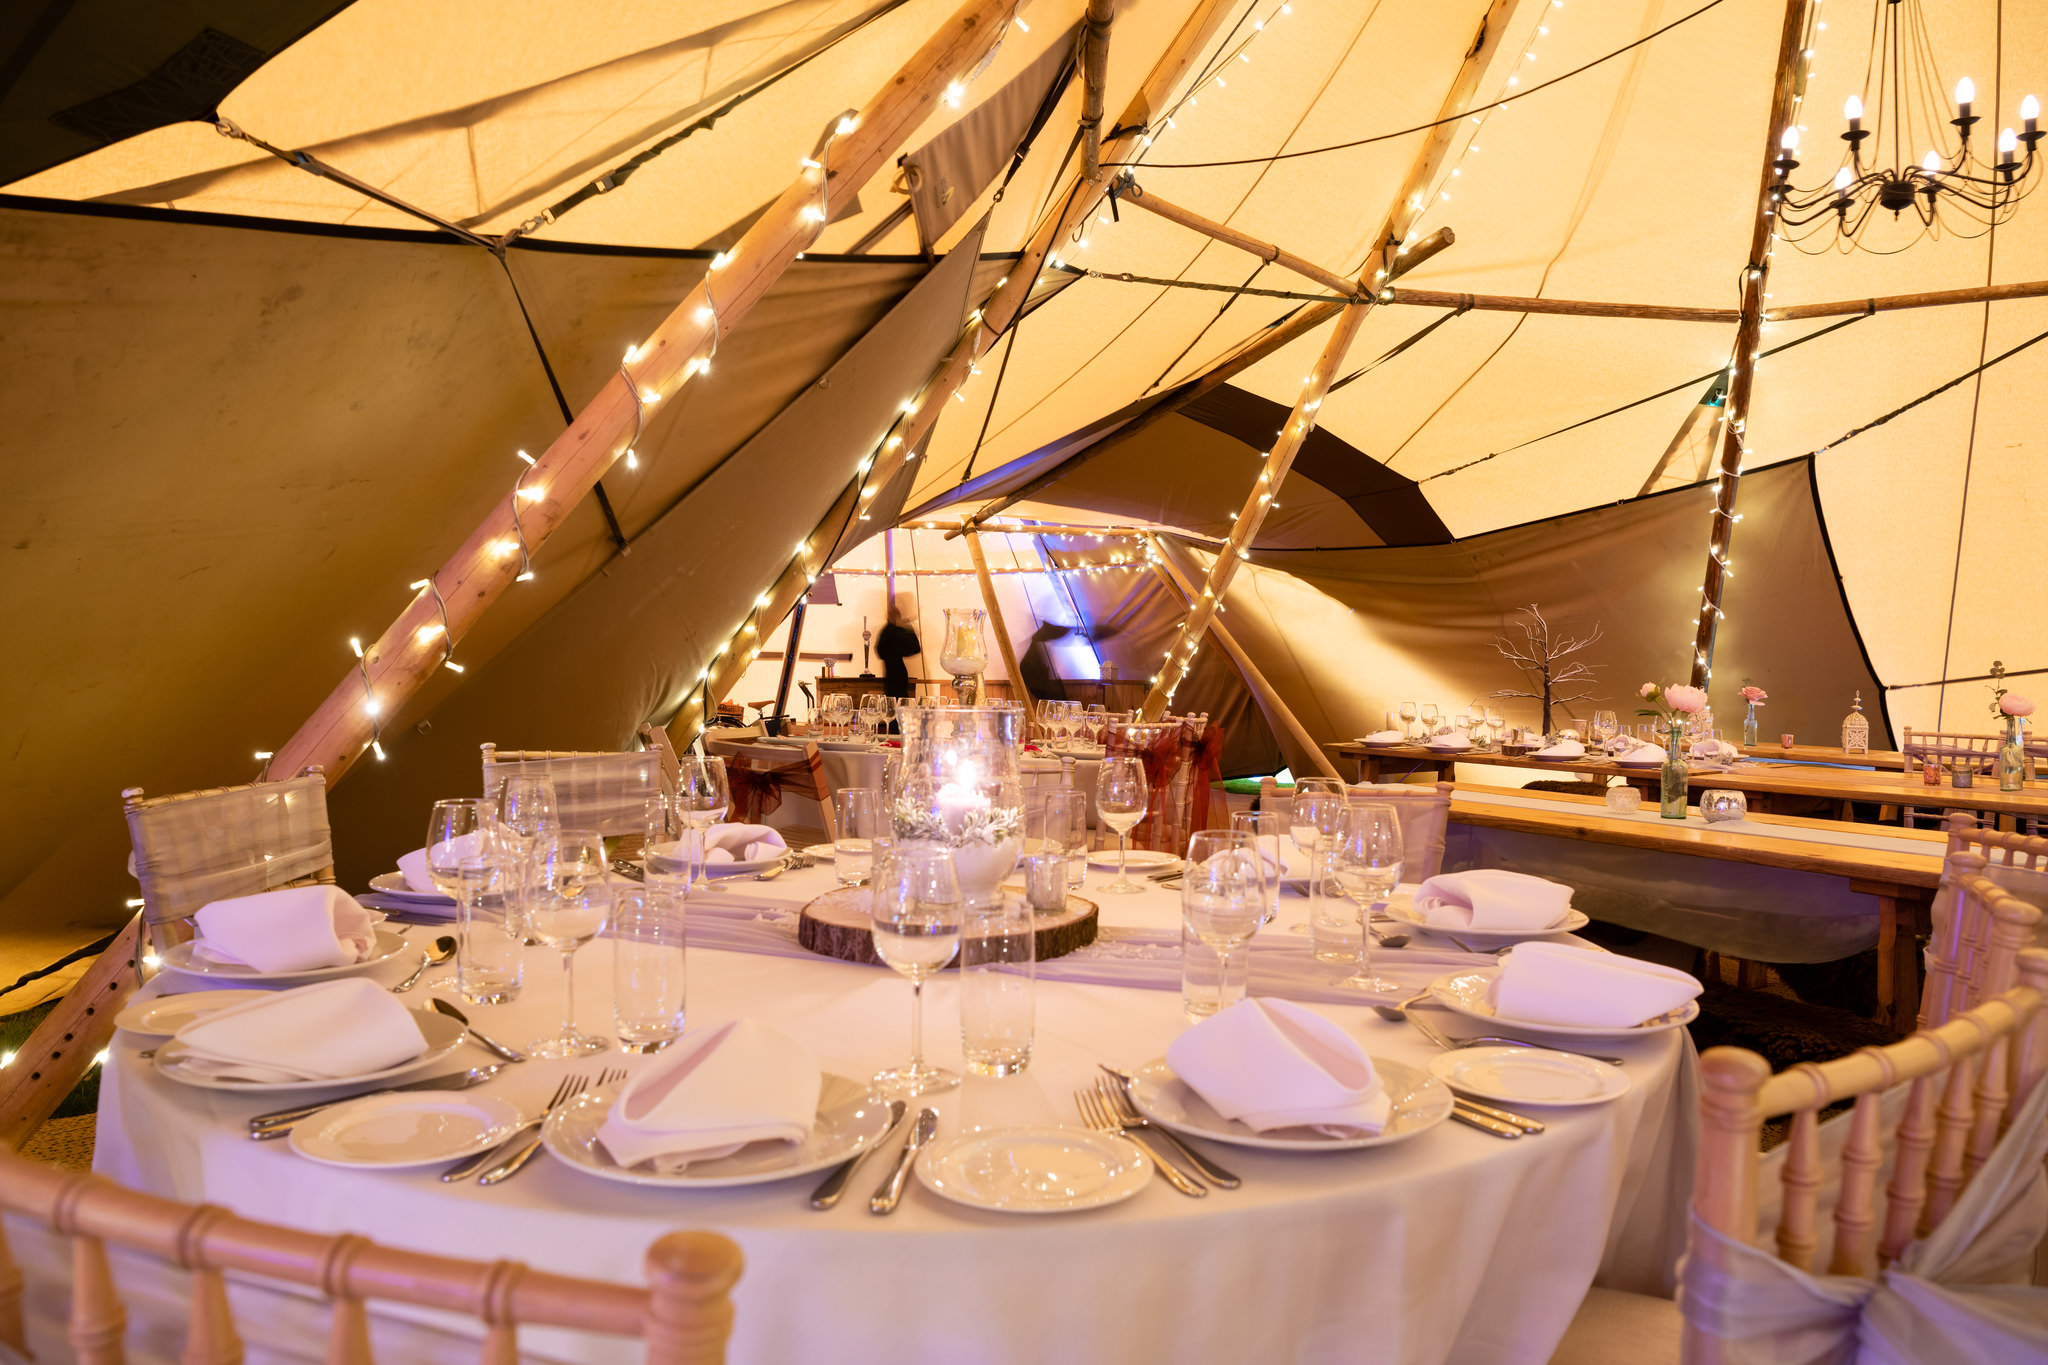 Teepees decorated for a wedding open day at Rothamsted Manor